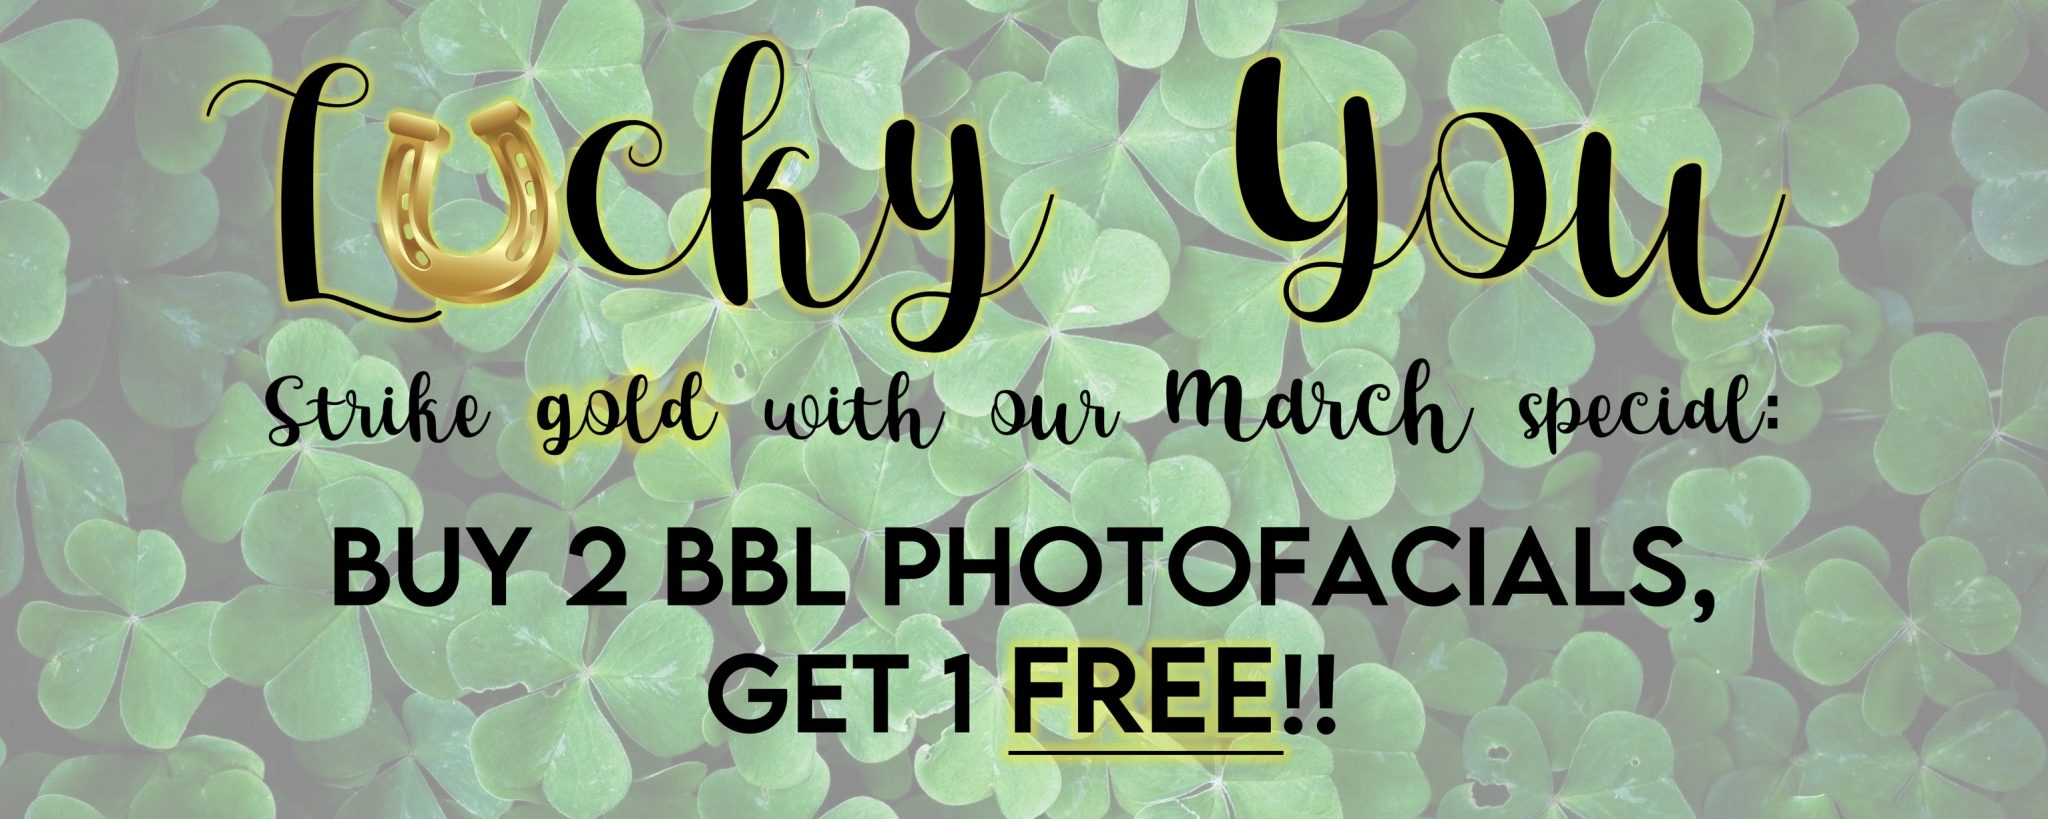 Aesthetic Services March photofacial specials